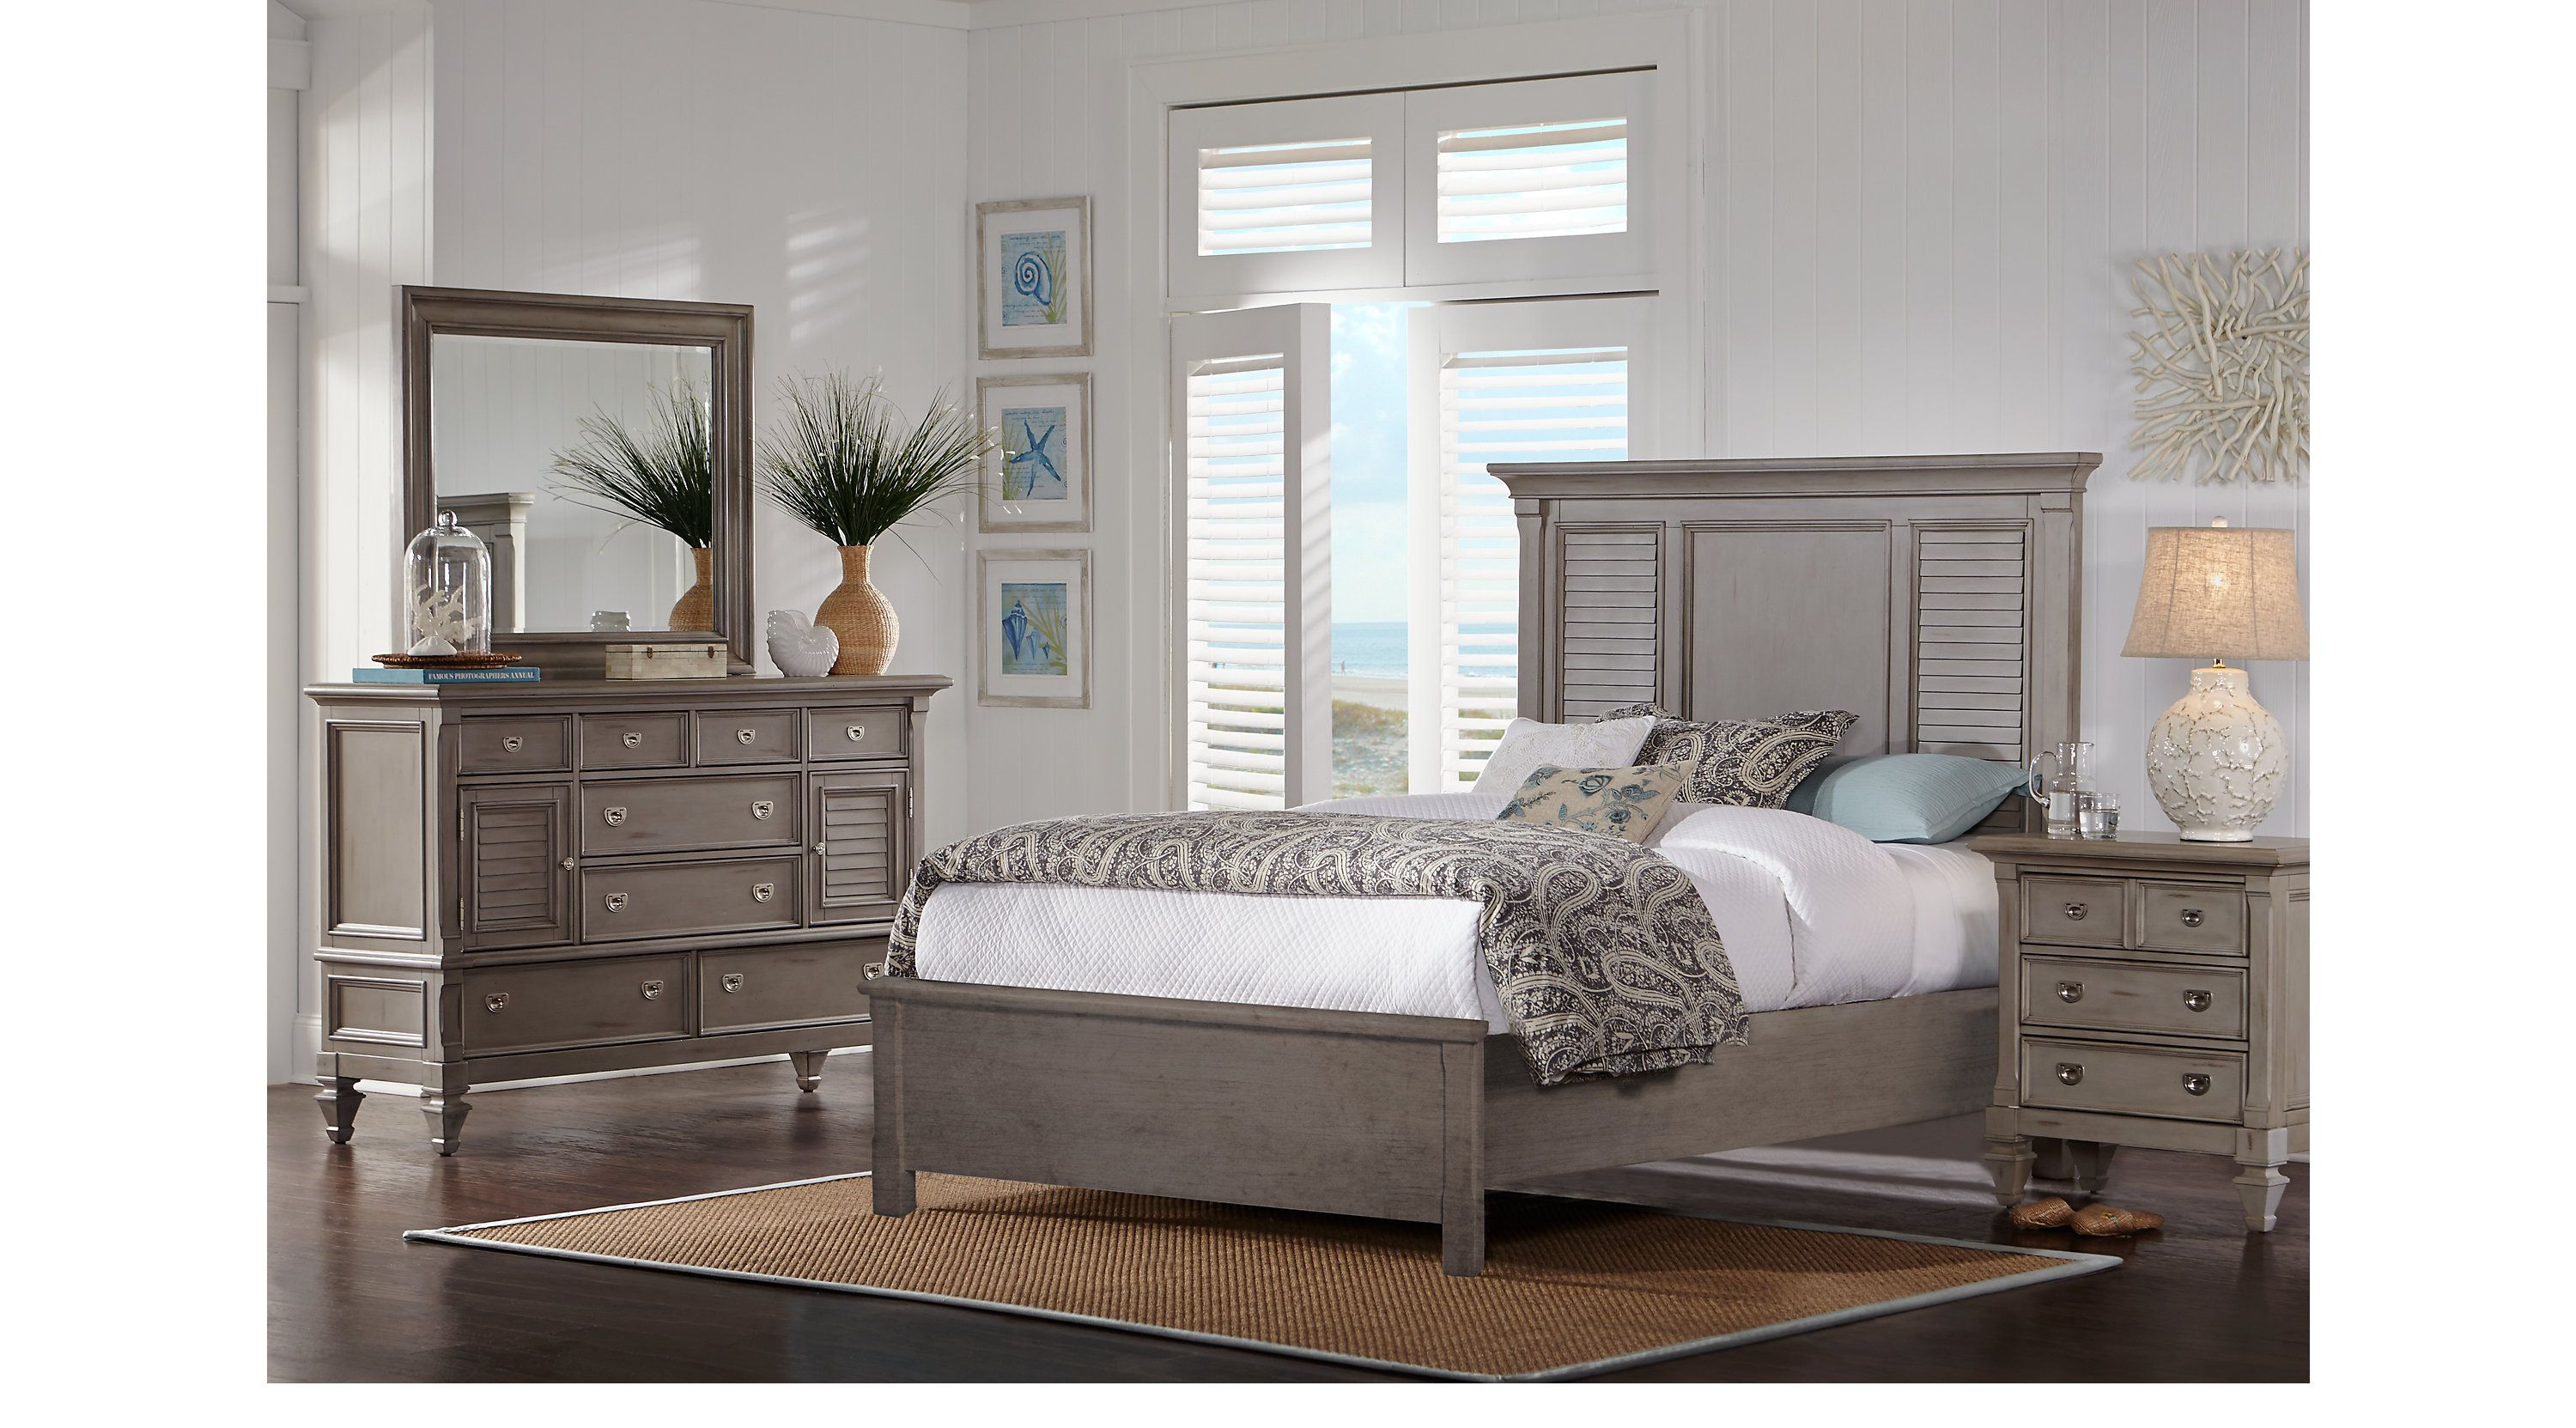 Belmar Gray 5 Pc Queen Bedroom Panel Traditional Bedroom Sets Bedroom Sets Queen King Bedroom Sets